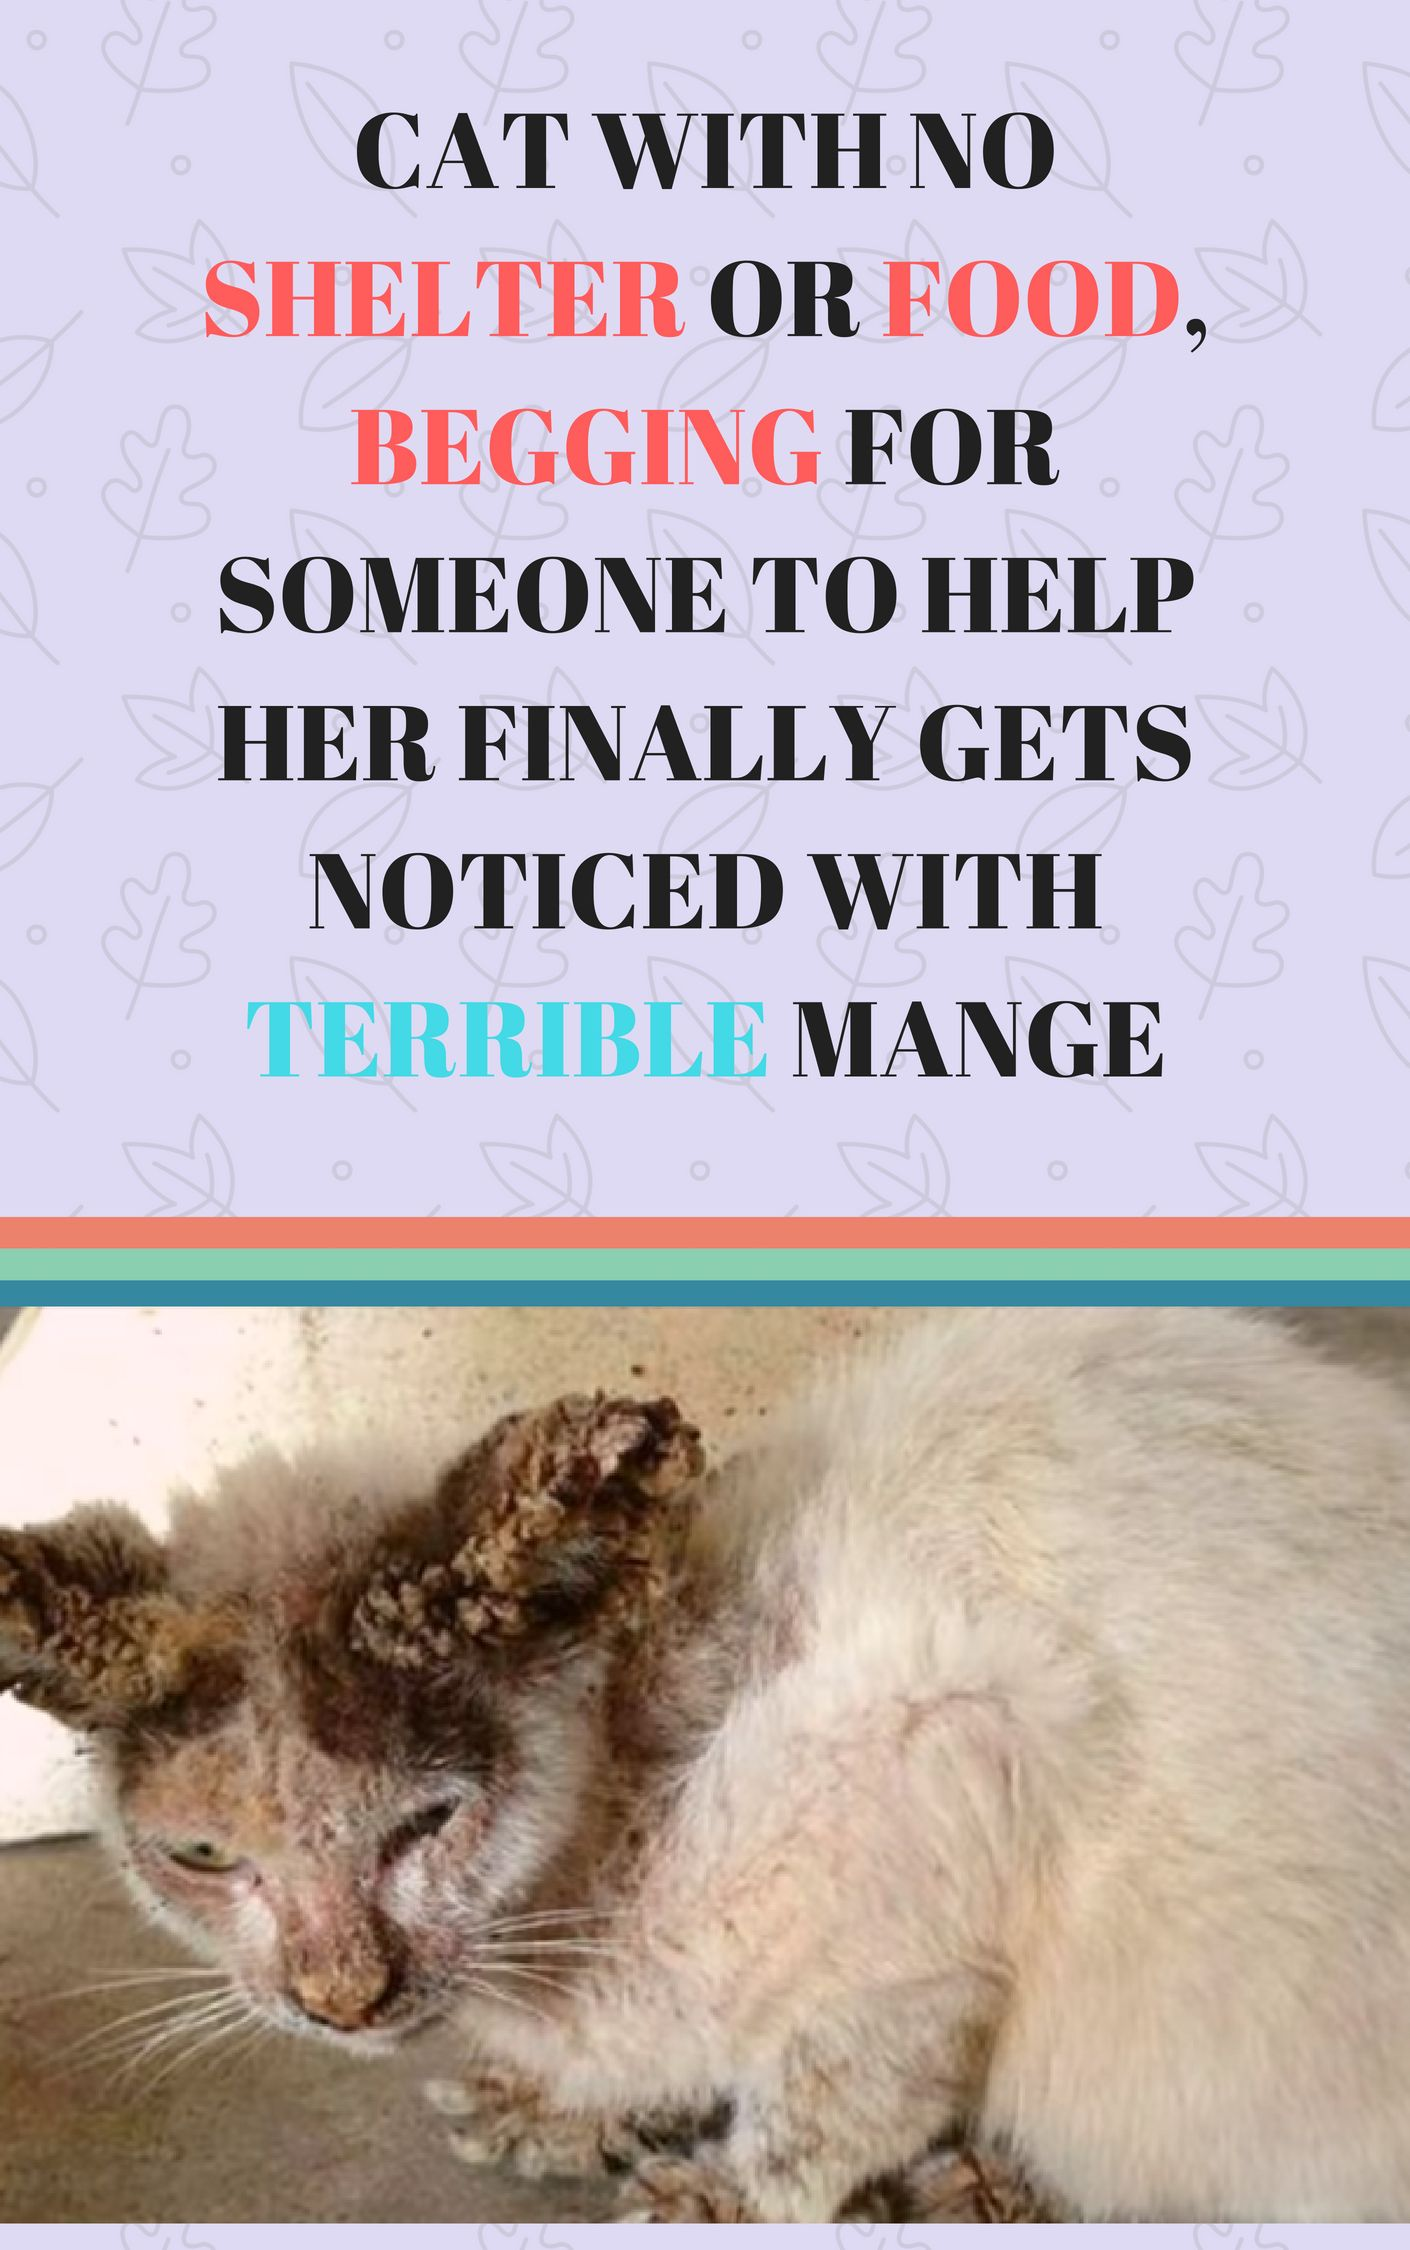 Cat With No Shelter Or Food Begging For Someone To Help Her Finally Gets Noticed With Terrible Mange Kitten Rescue Stories Cat Rescue Stories Kitten Rescue